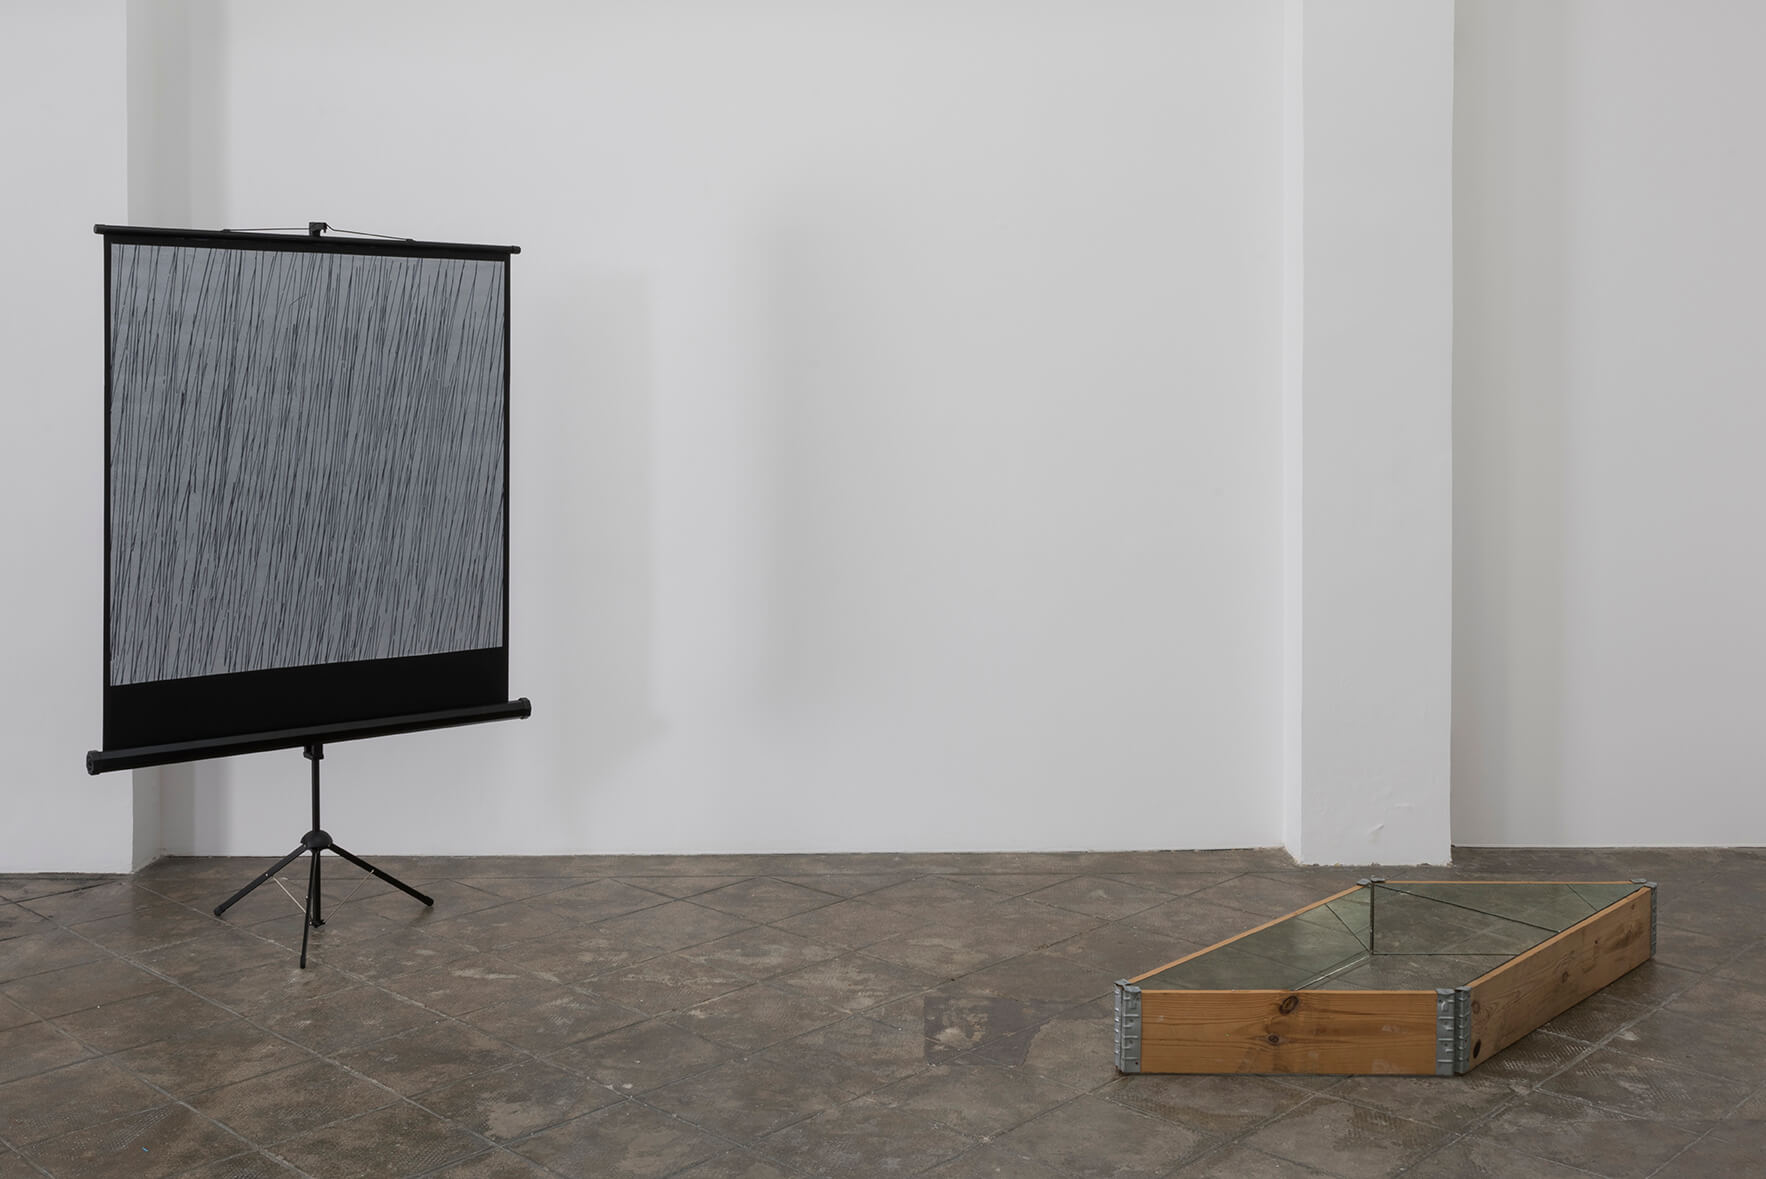 Installation view: Abans que me n'oblidi, ProjecteSD   Abans que me n'oblidi   ProjecteSD